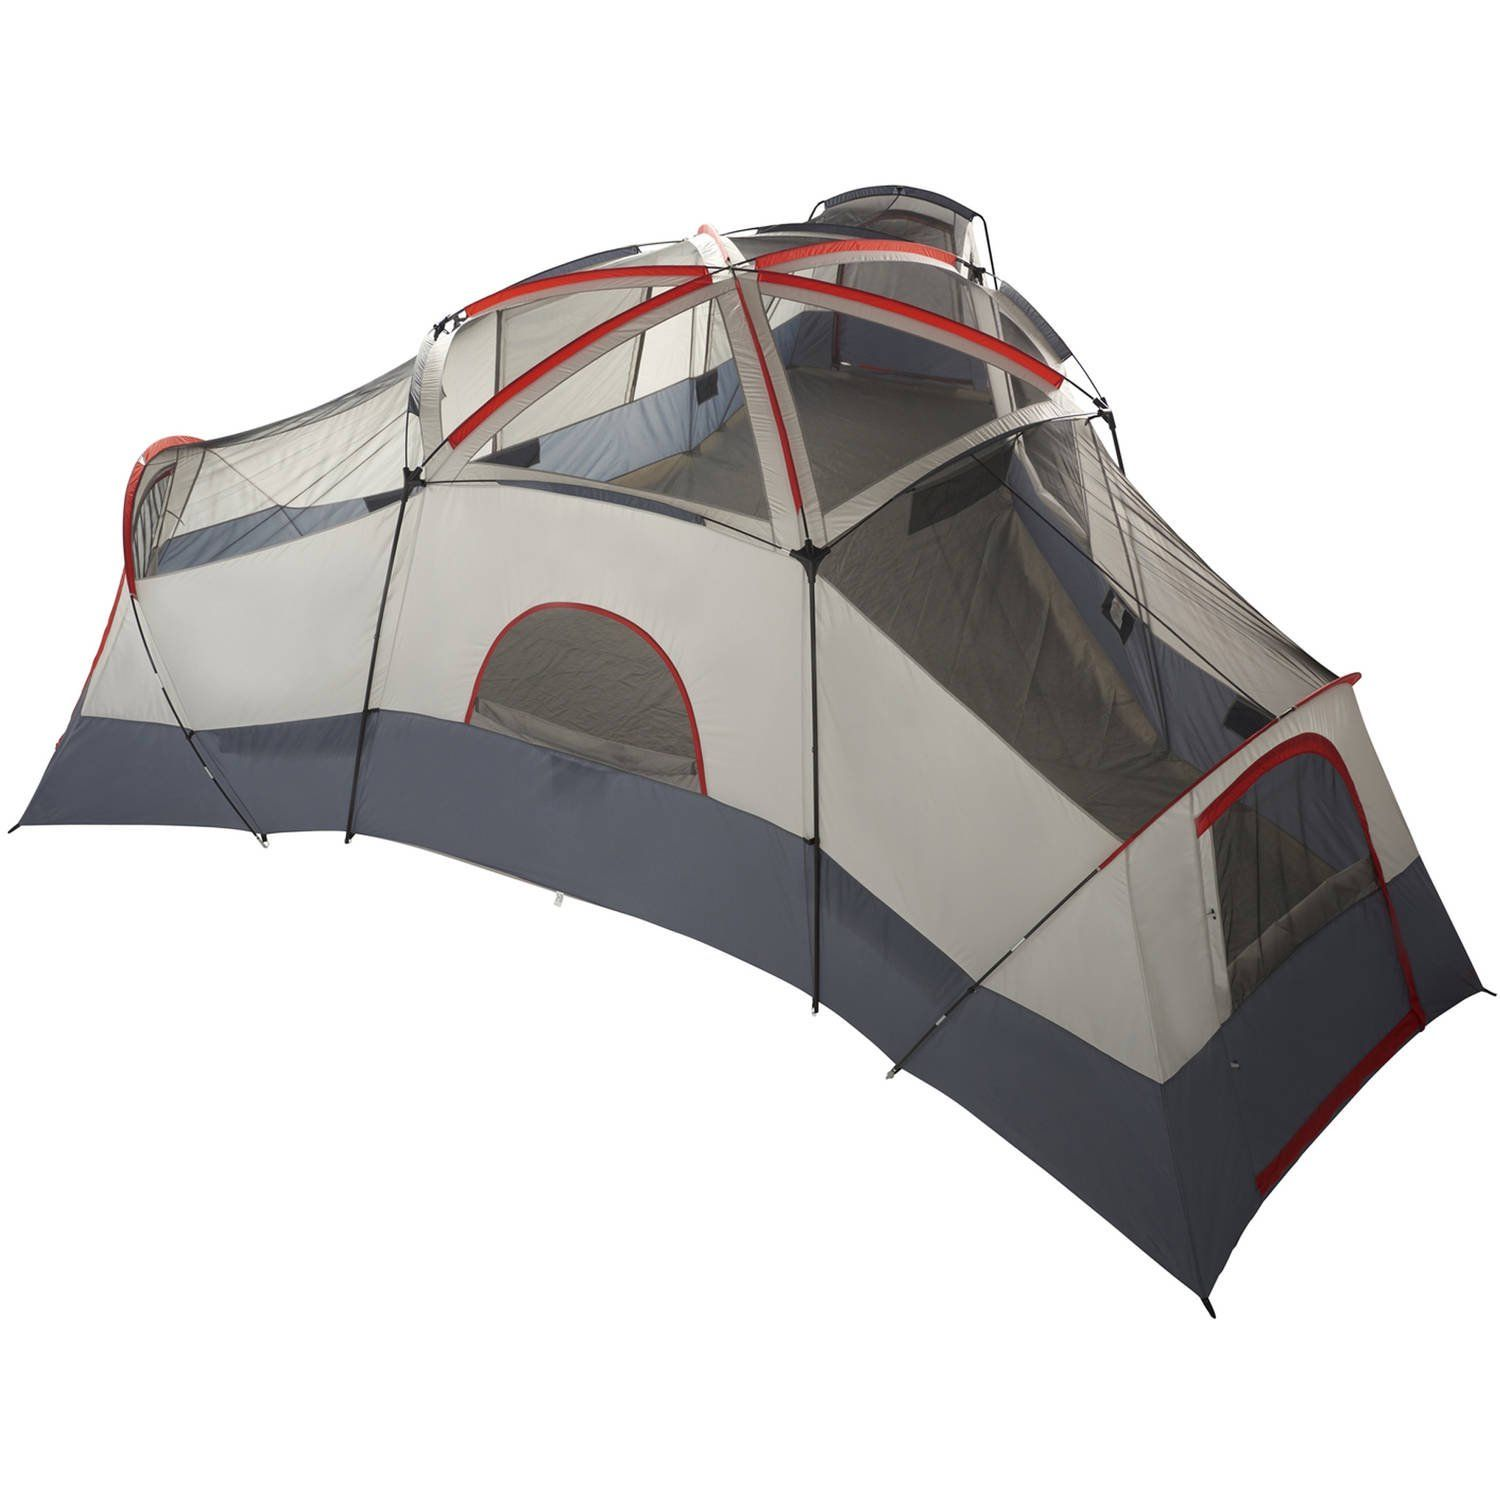 Ozark Trail 20 Person 4 Room Cabin Tent With 3 Separate Entrances Walmart Com Family Tent Camping Best Tents For Camping Cabin Tent